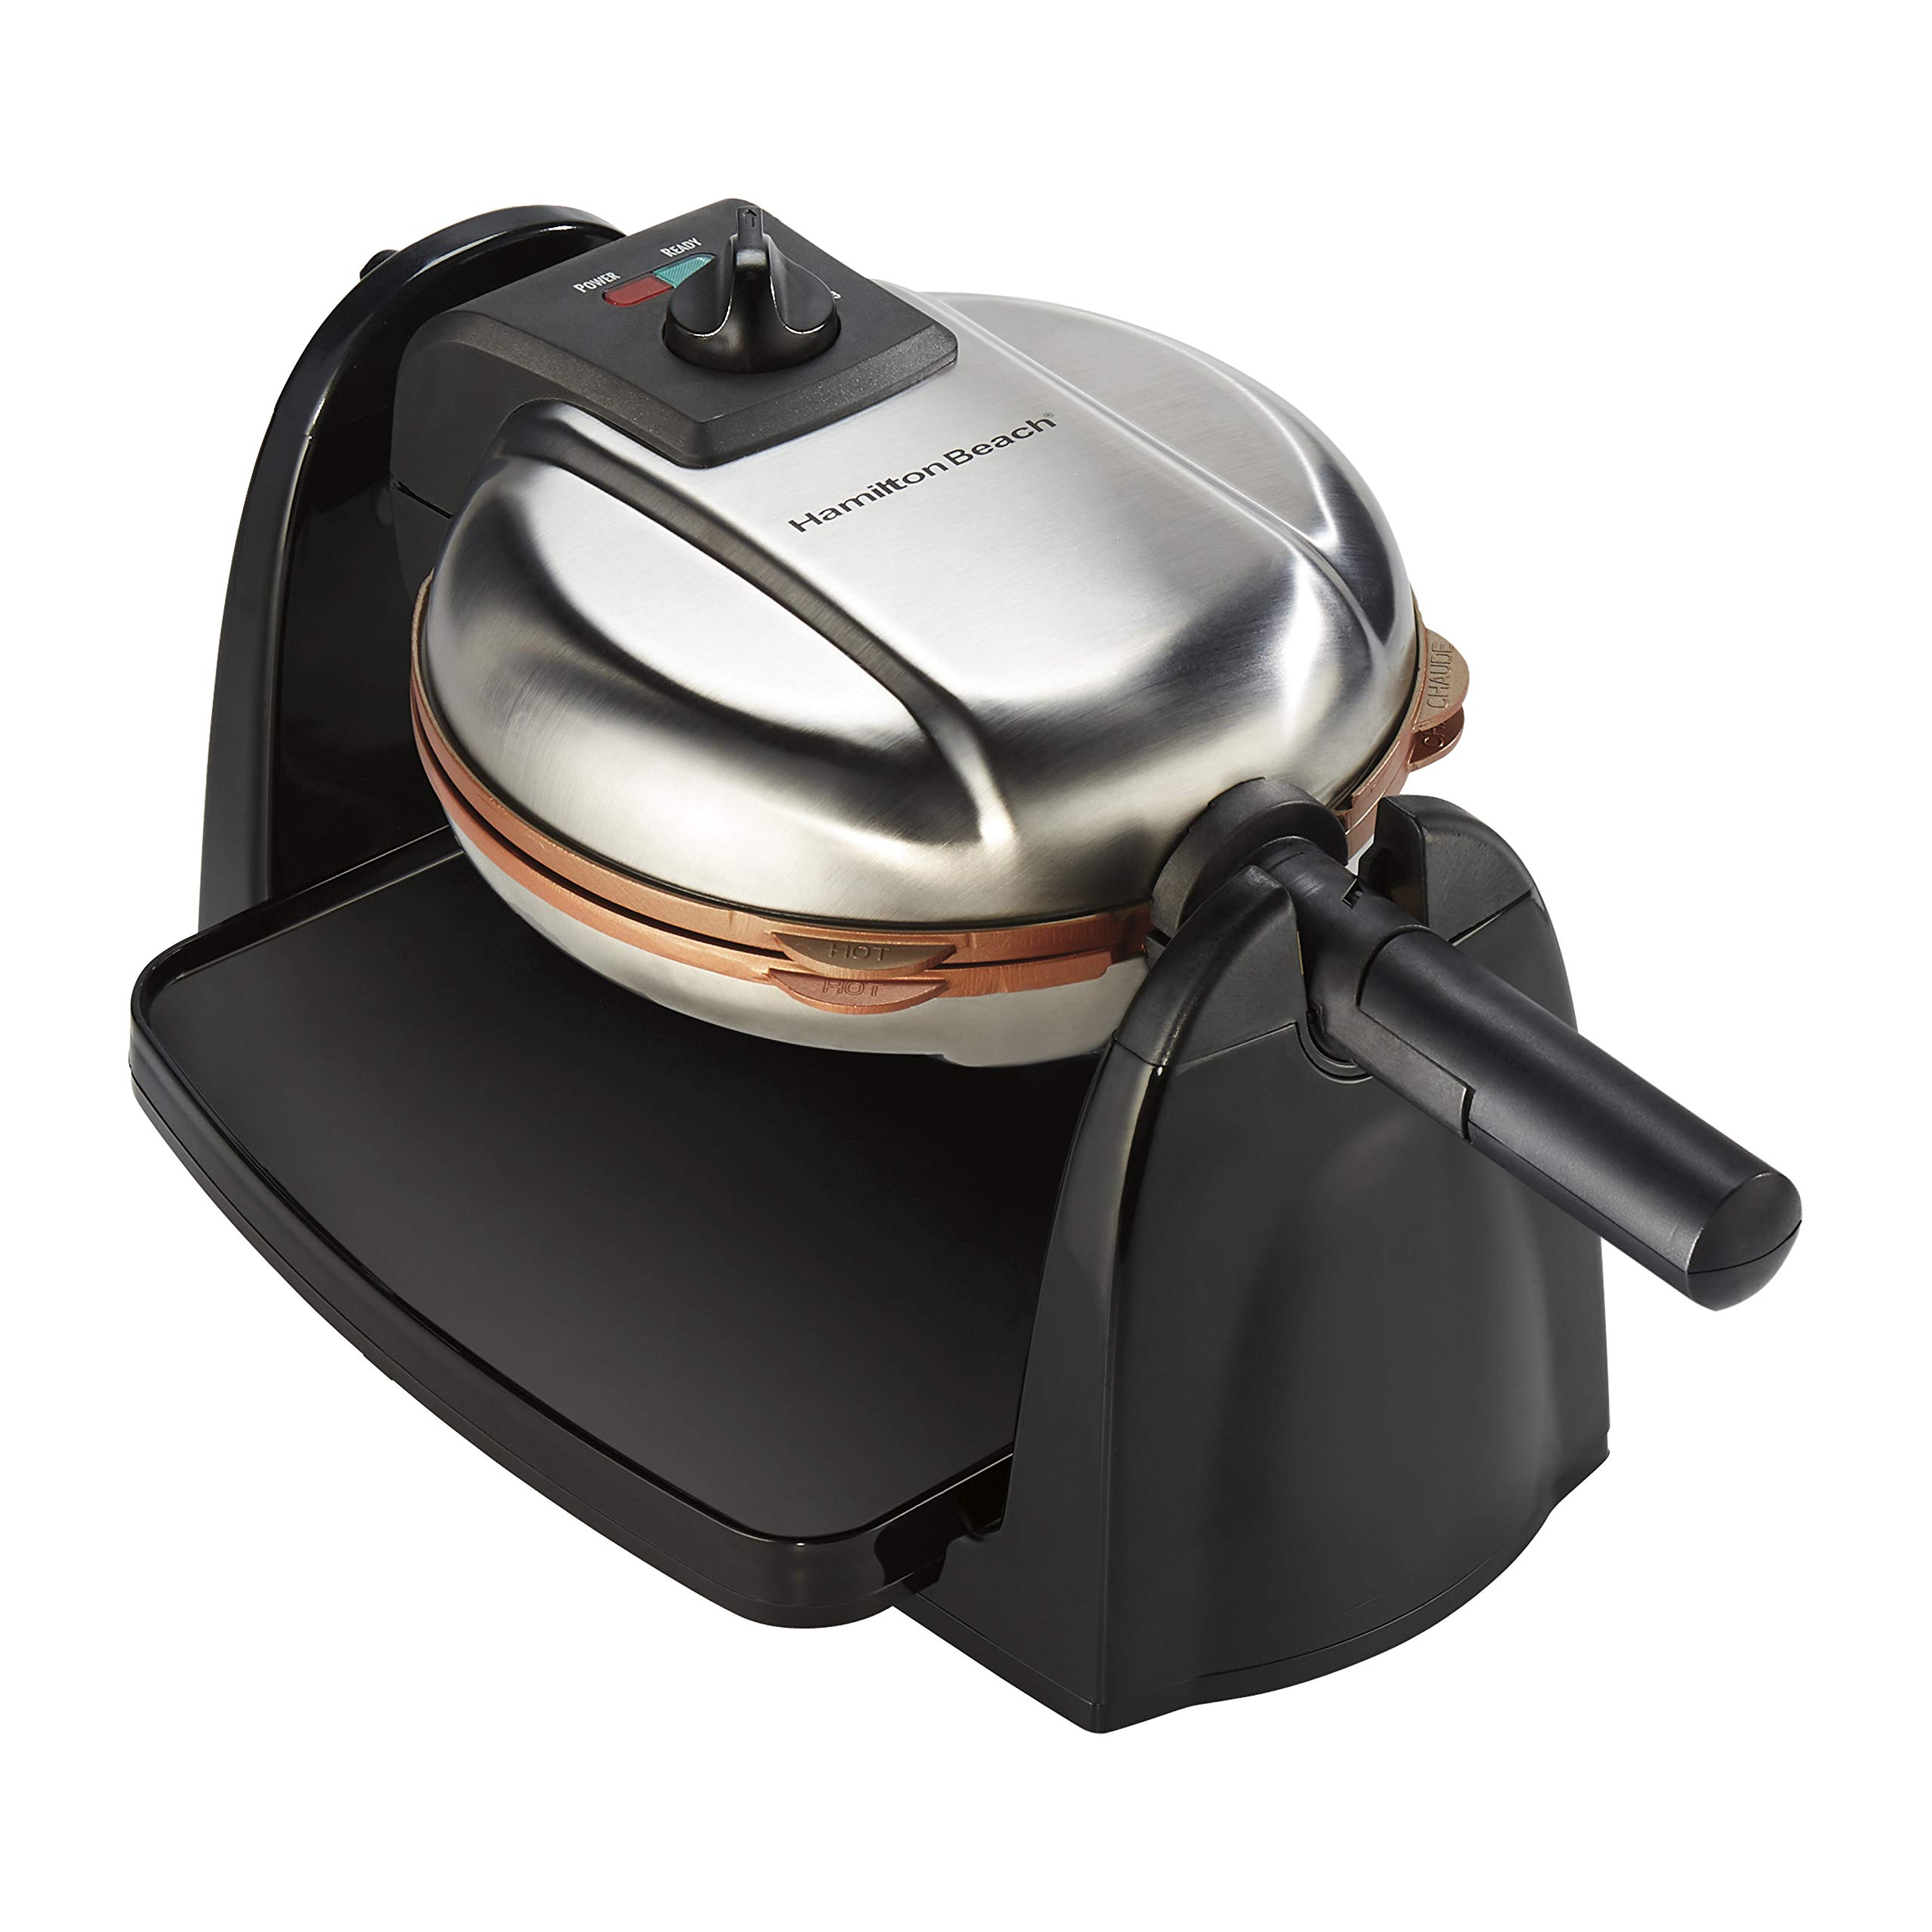 Hamilton Beach Flip Belgian Waffle Maker With Removable Plates Copper Ceramic 7 Round 26031 Amazon Sg Home